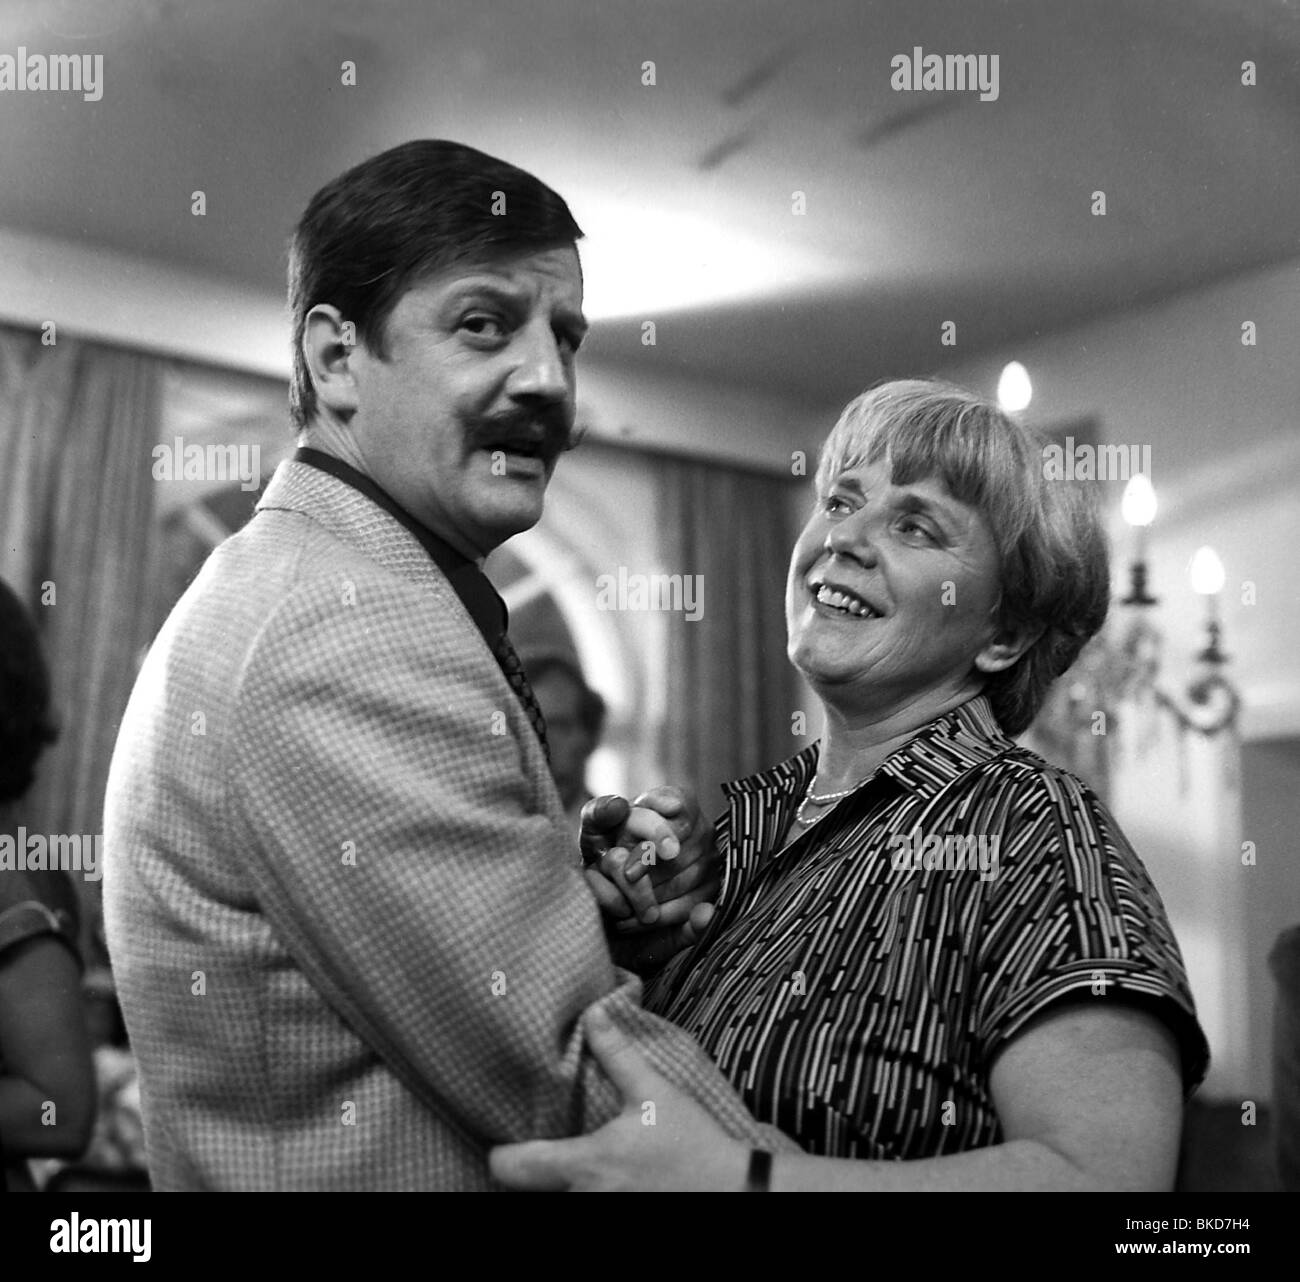 "Brenner, Hans, 25.1.1938 - 4.9.1998, Austrian actor, half length, with Ruth Drexel, scene from the TV movie ""Legen Stock Photo"